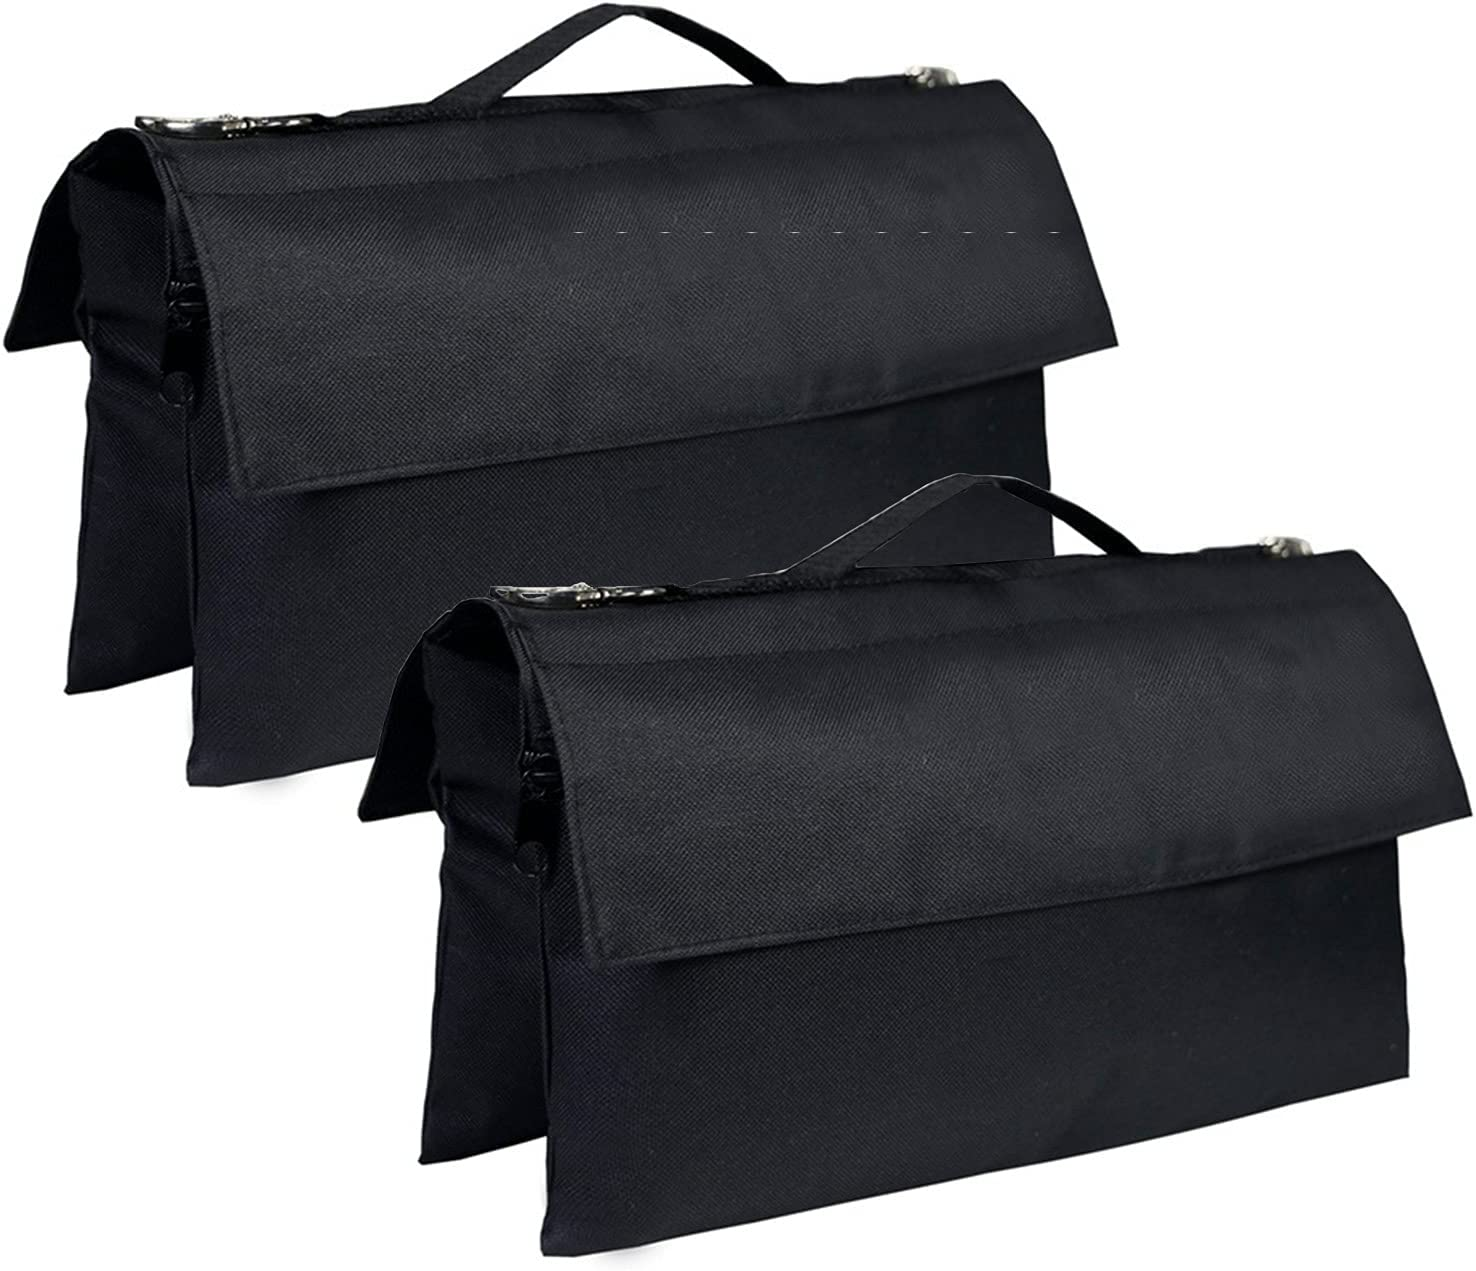 Photography Sandbag 2Pack Max 64% OFF 1 year warranty Saddle Professional Weigh